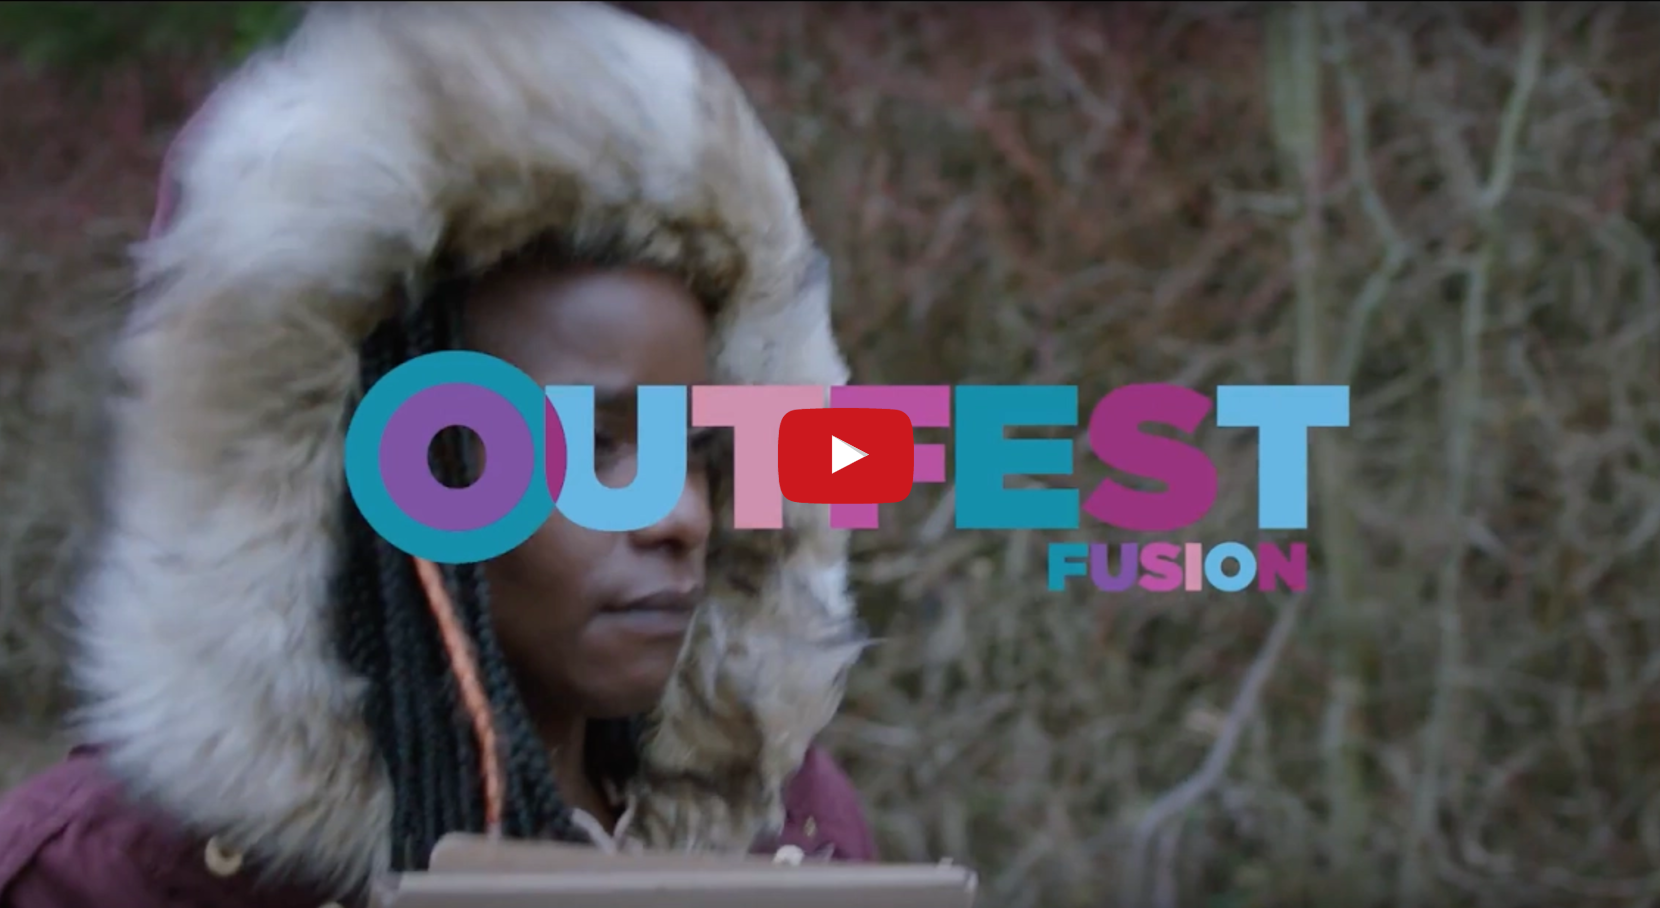 Outfest Fusion sizzler